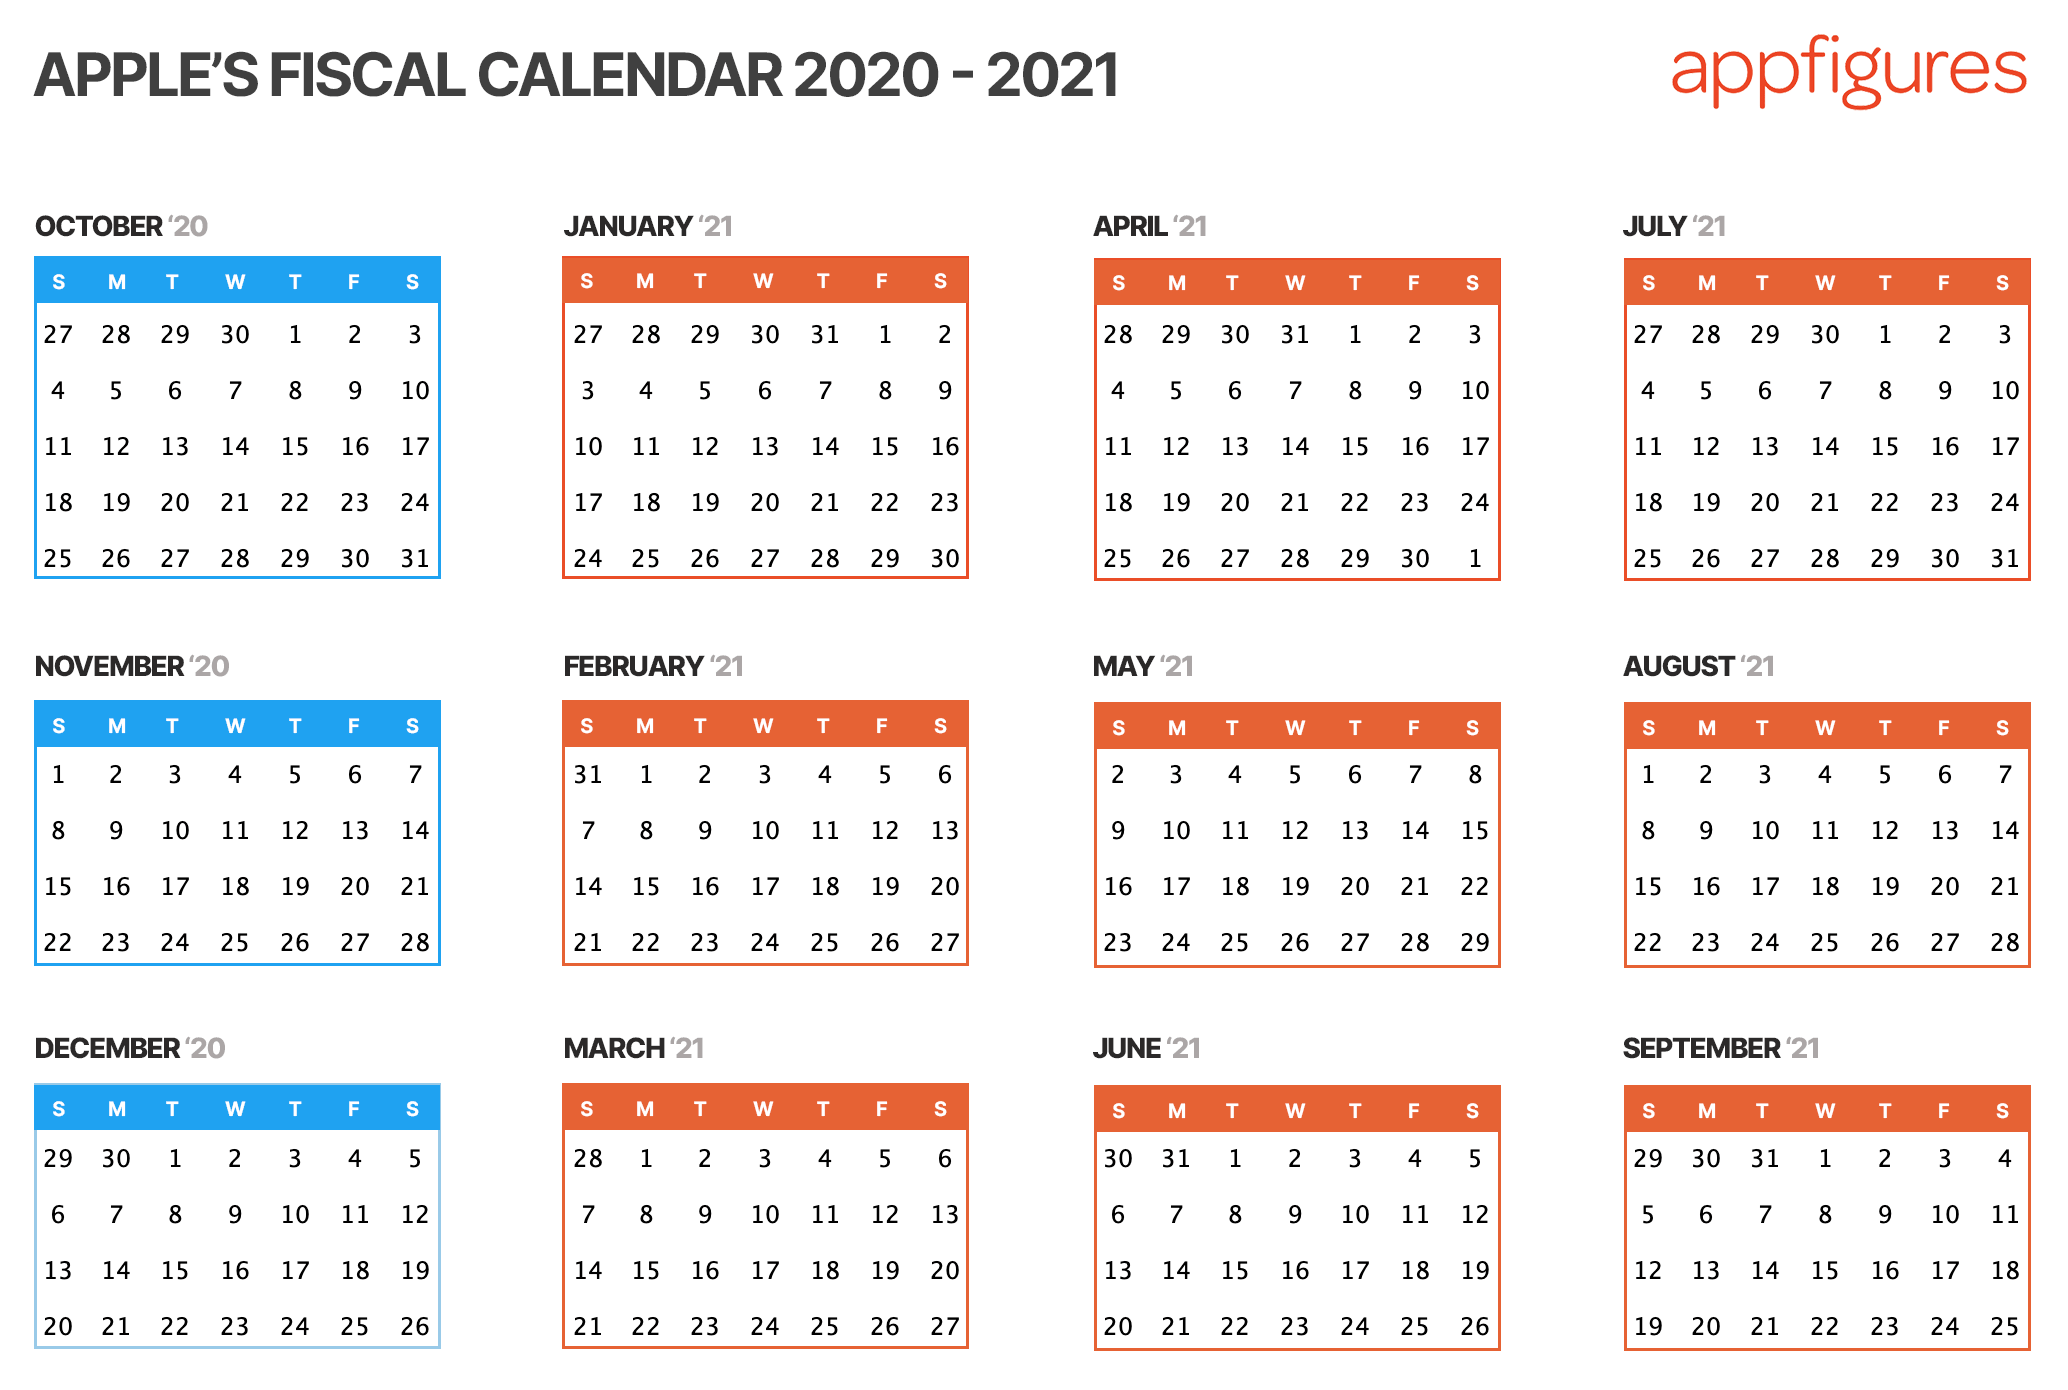 Apple's fiscal calendar for developer payouts (2020 - 2021)